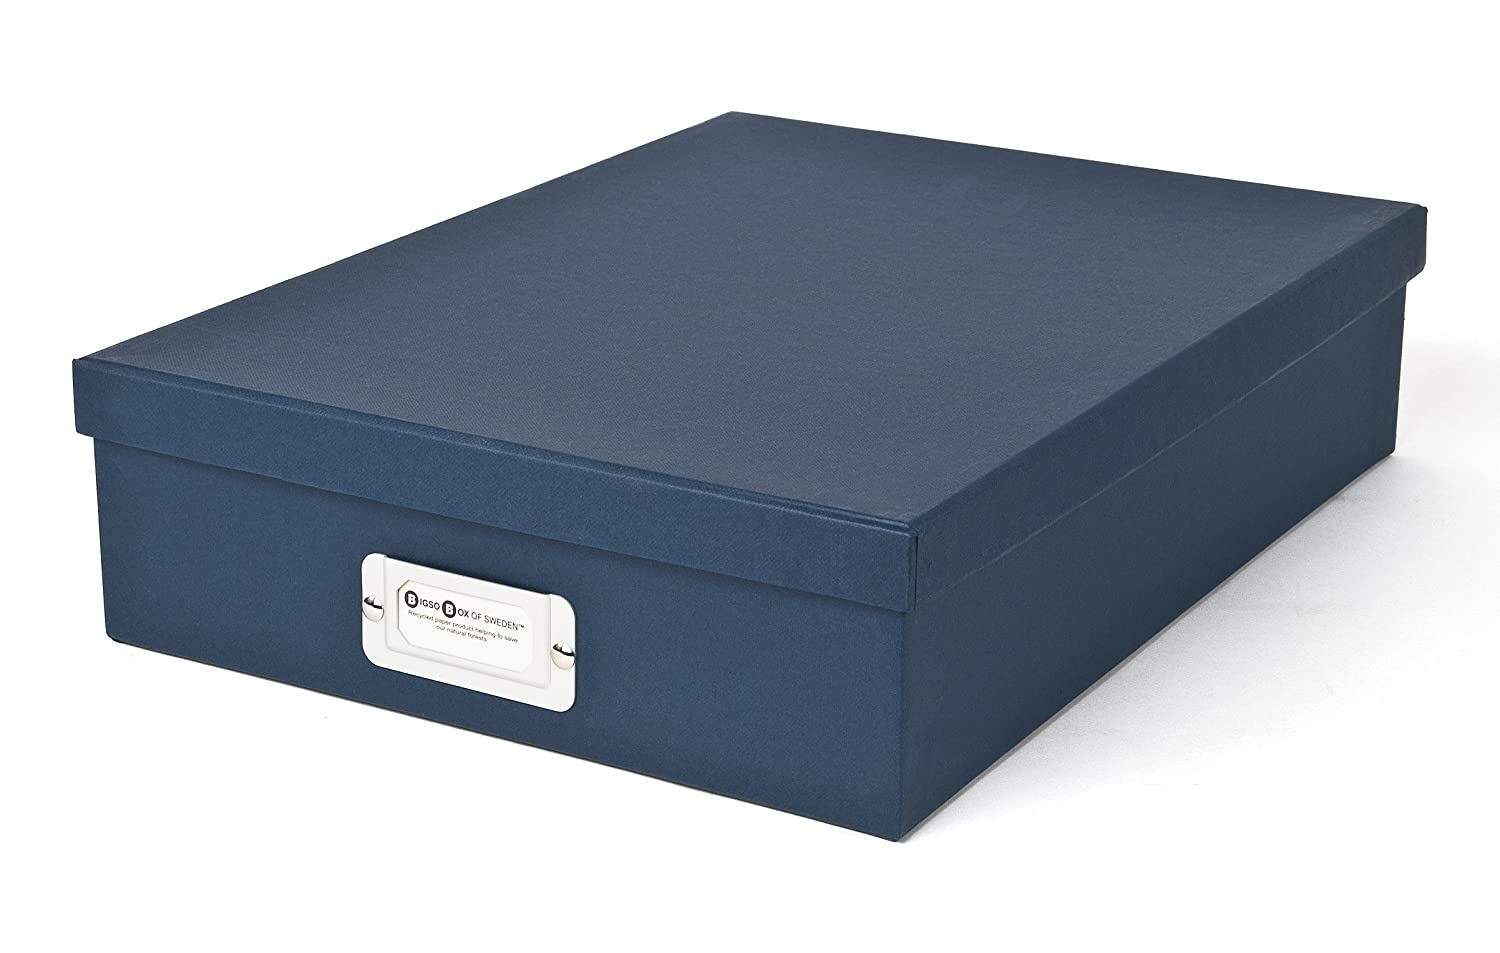 Bigso Oskar Document/Letter Box, Navy 9451569